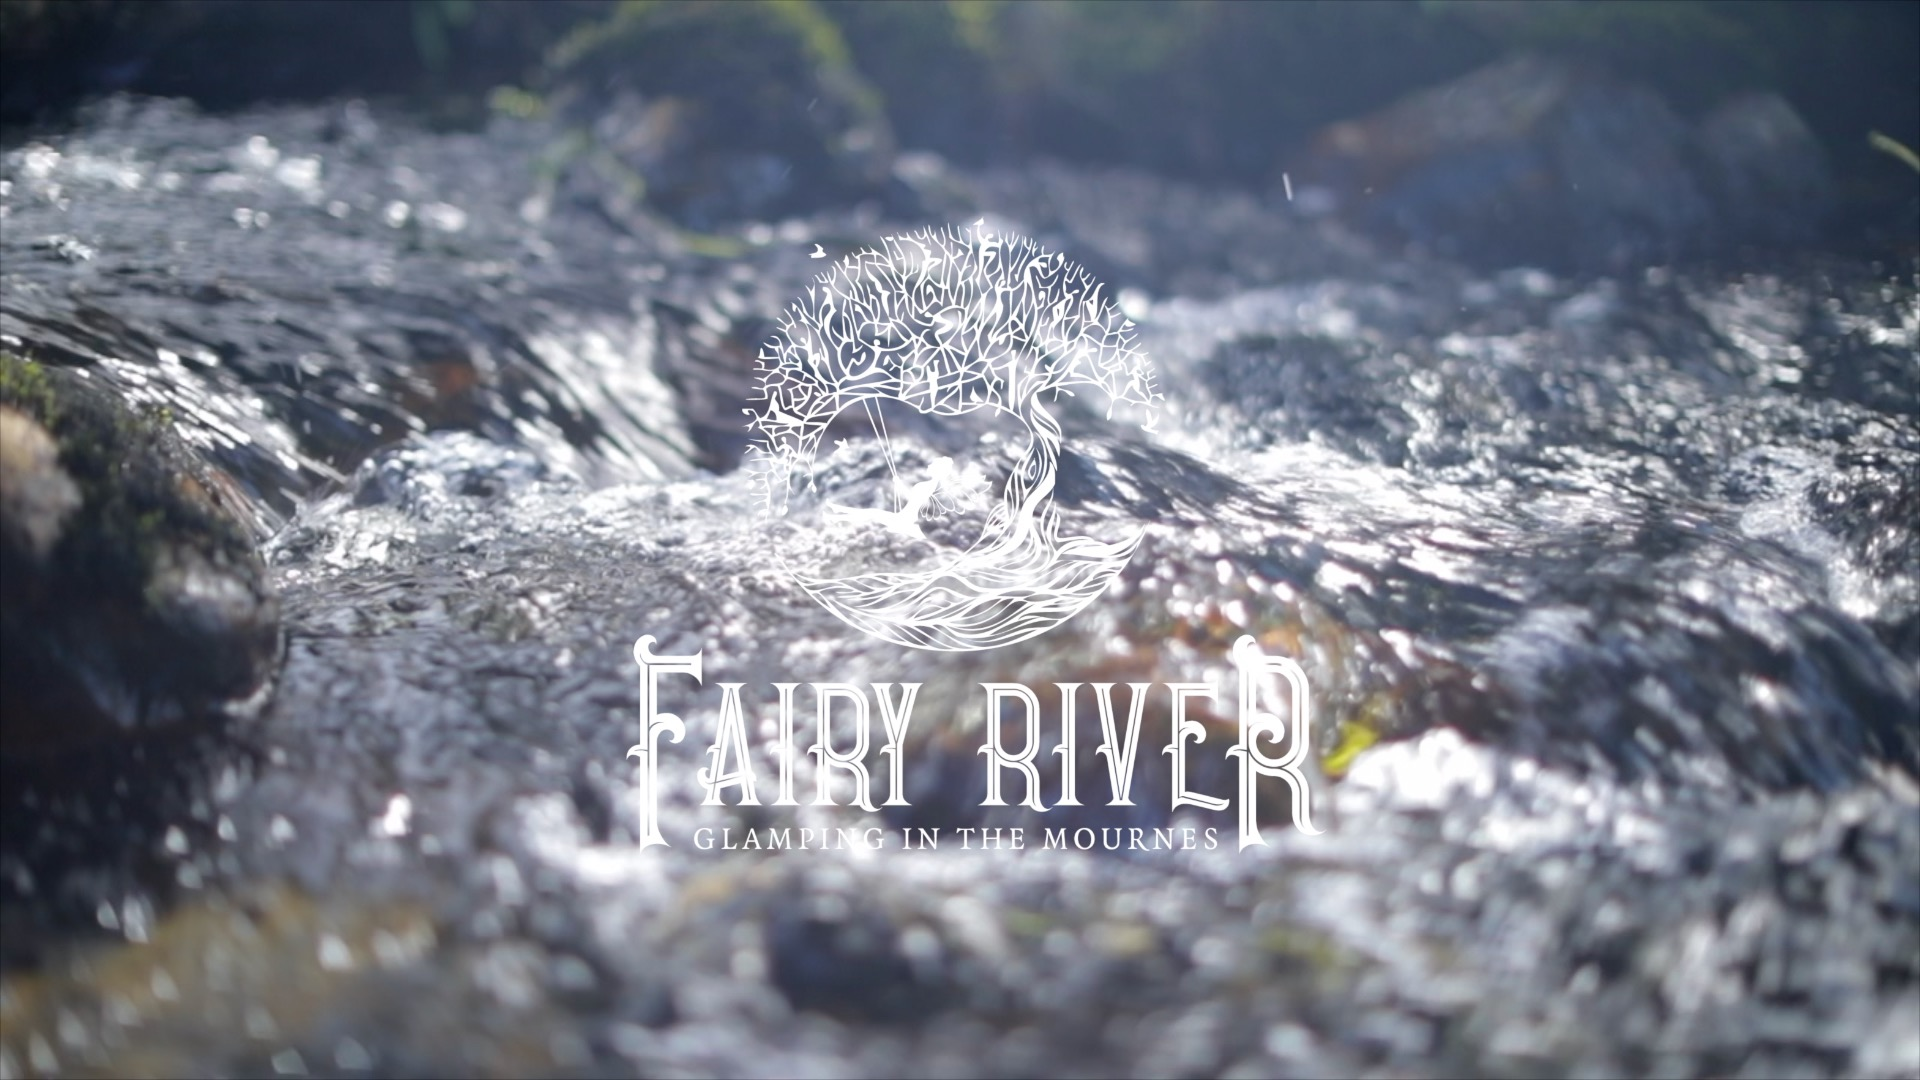 Fairy River Glamping image